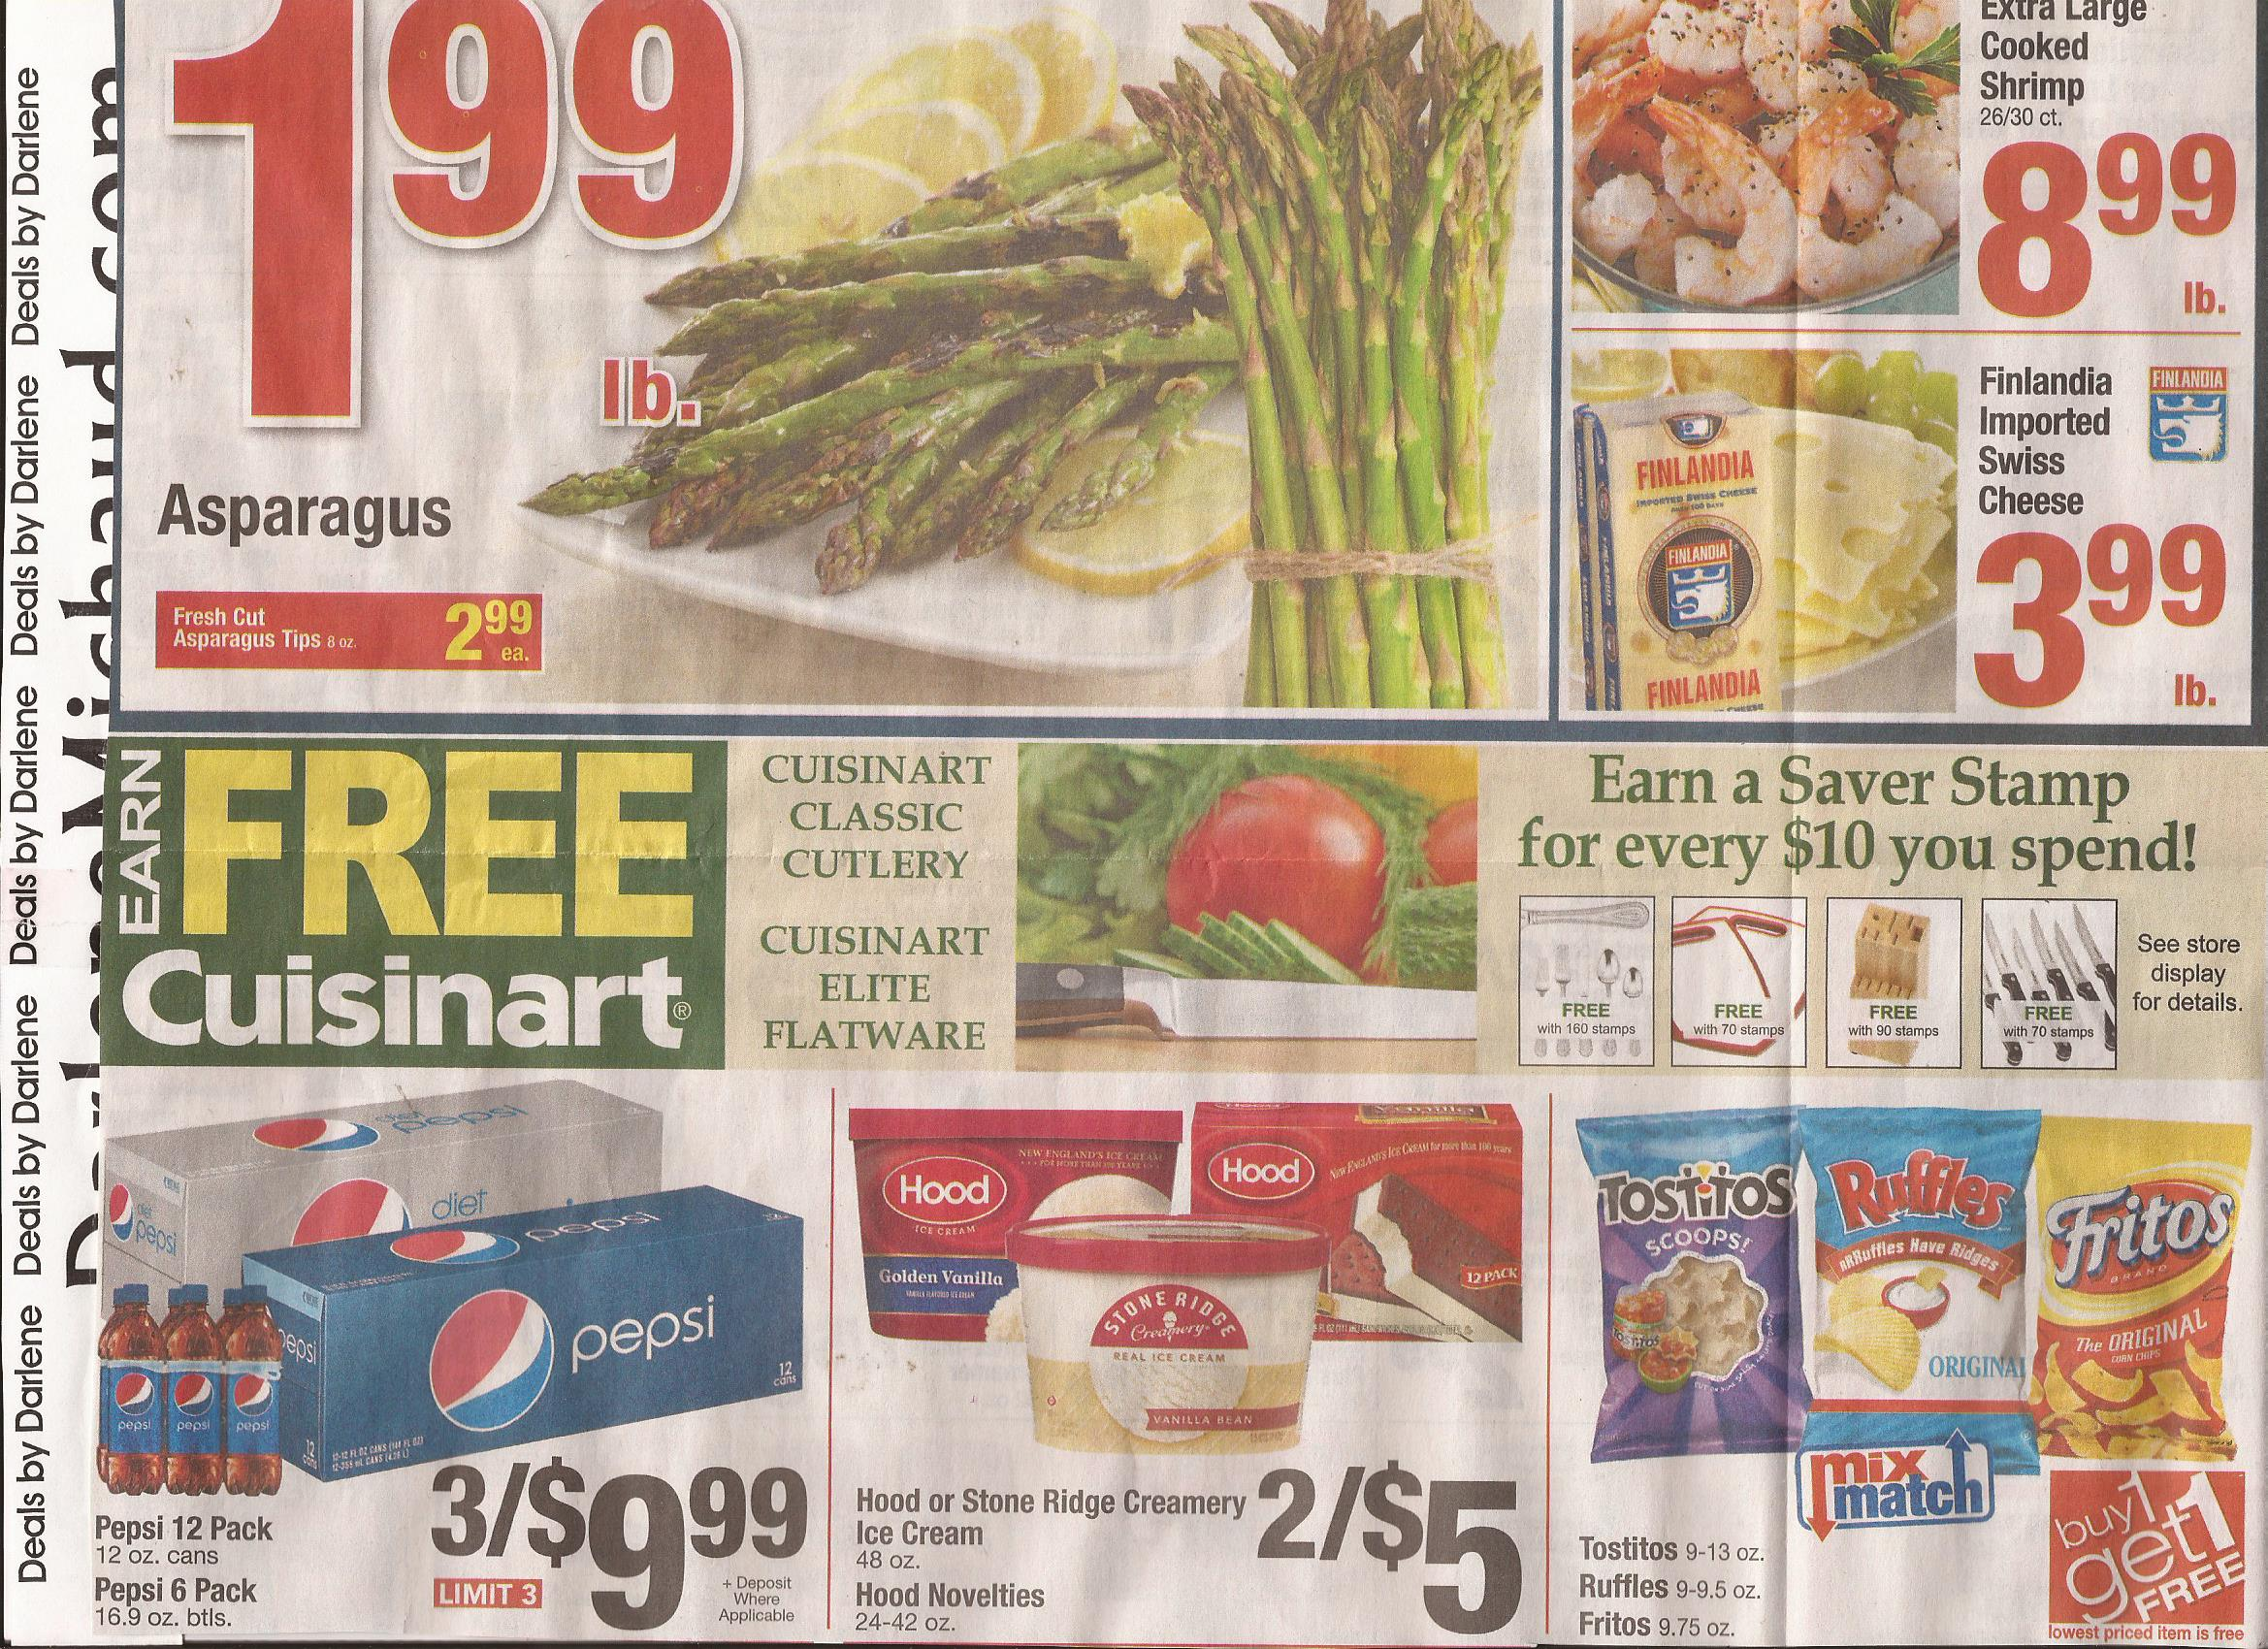 shaws-flyer-oct-16-oct-22-page-1b